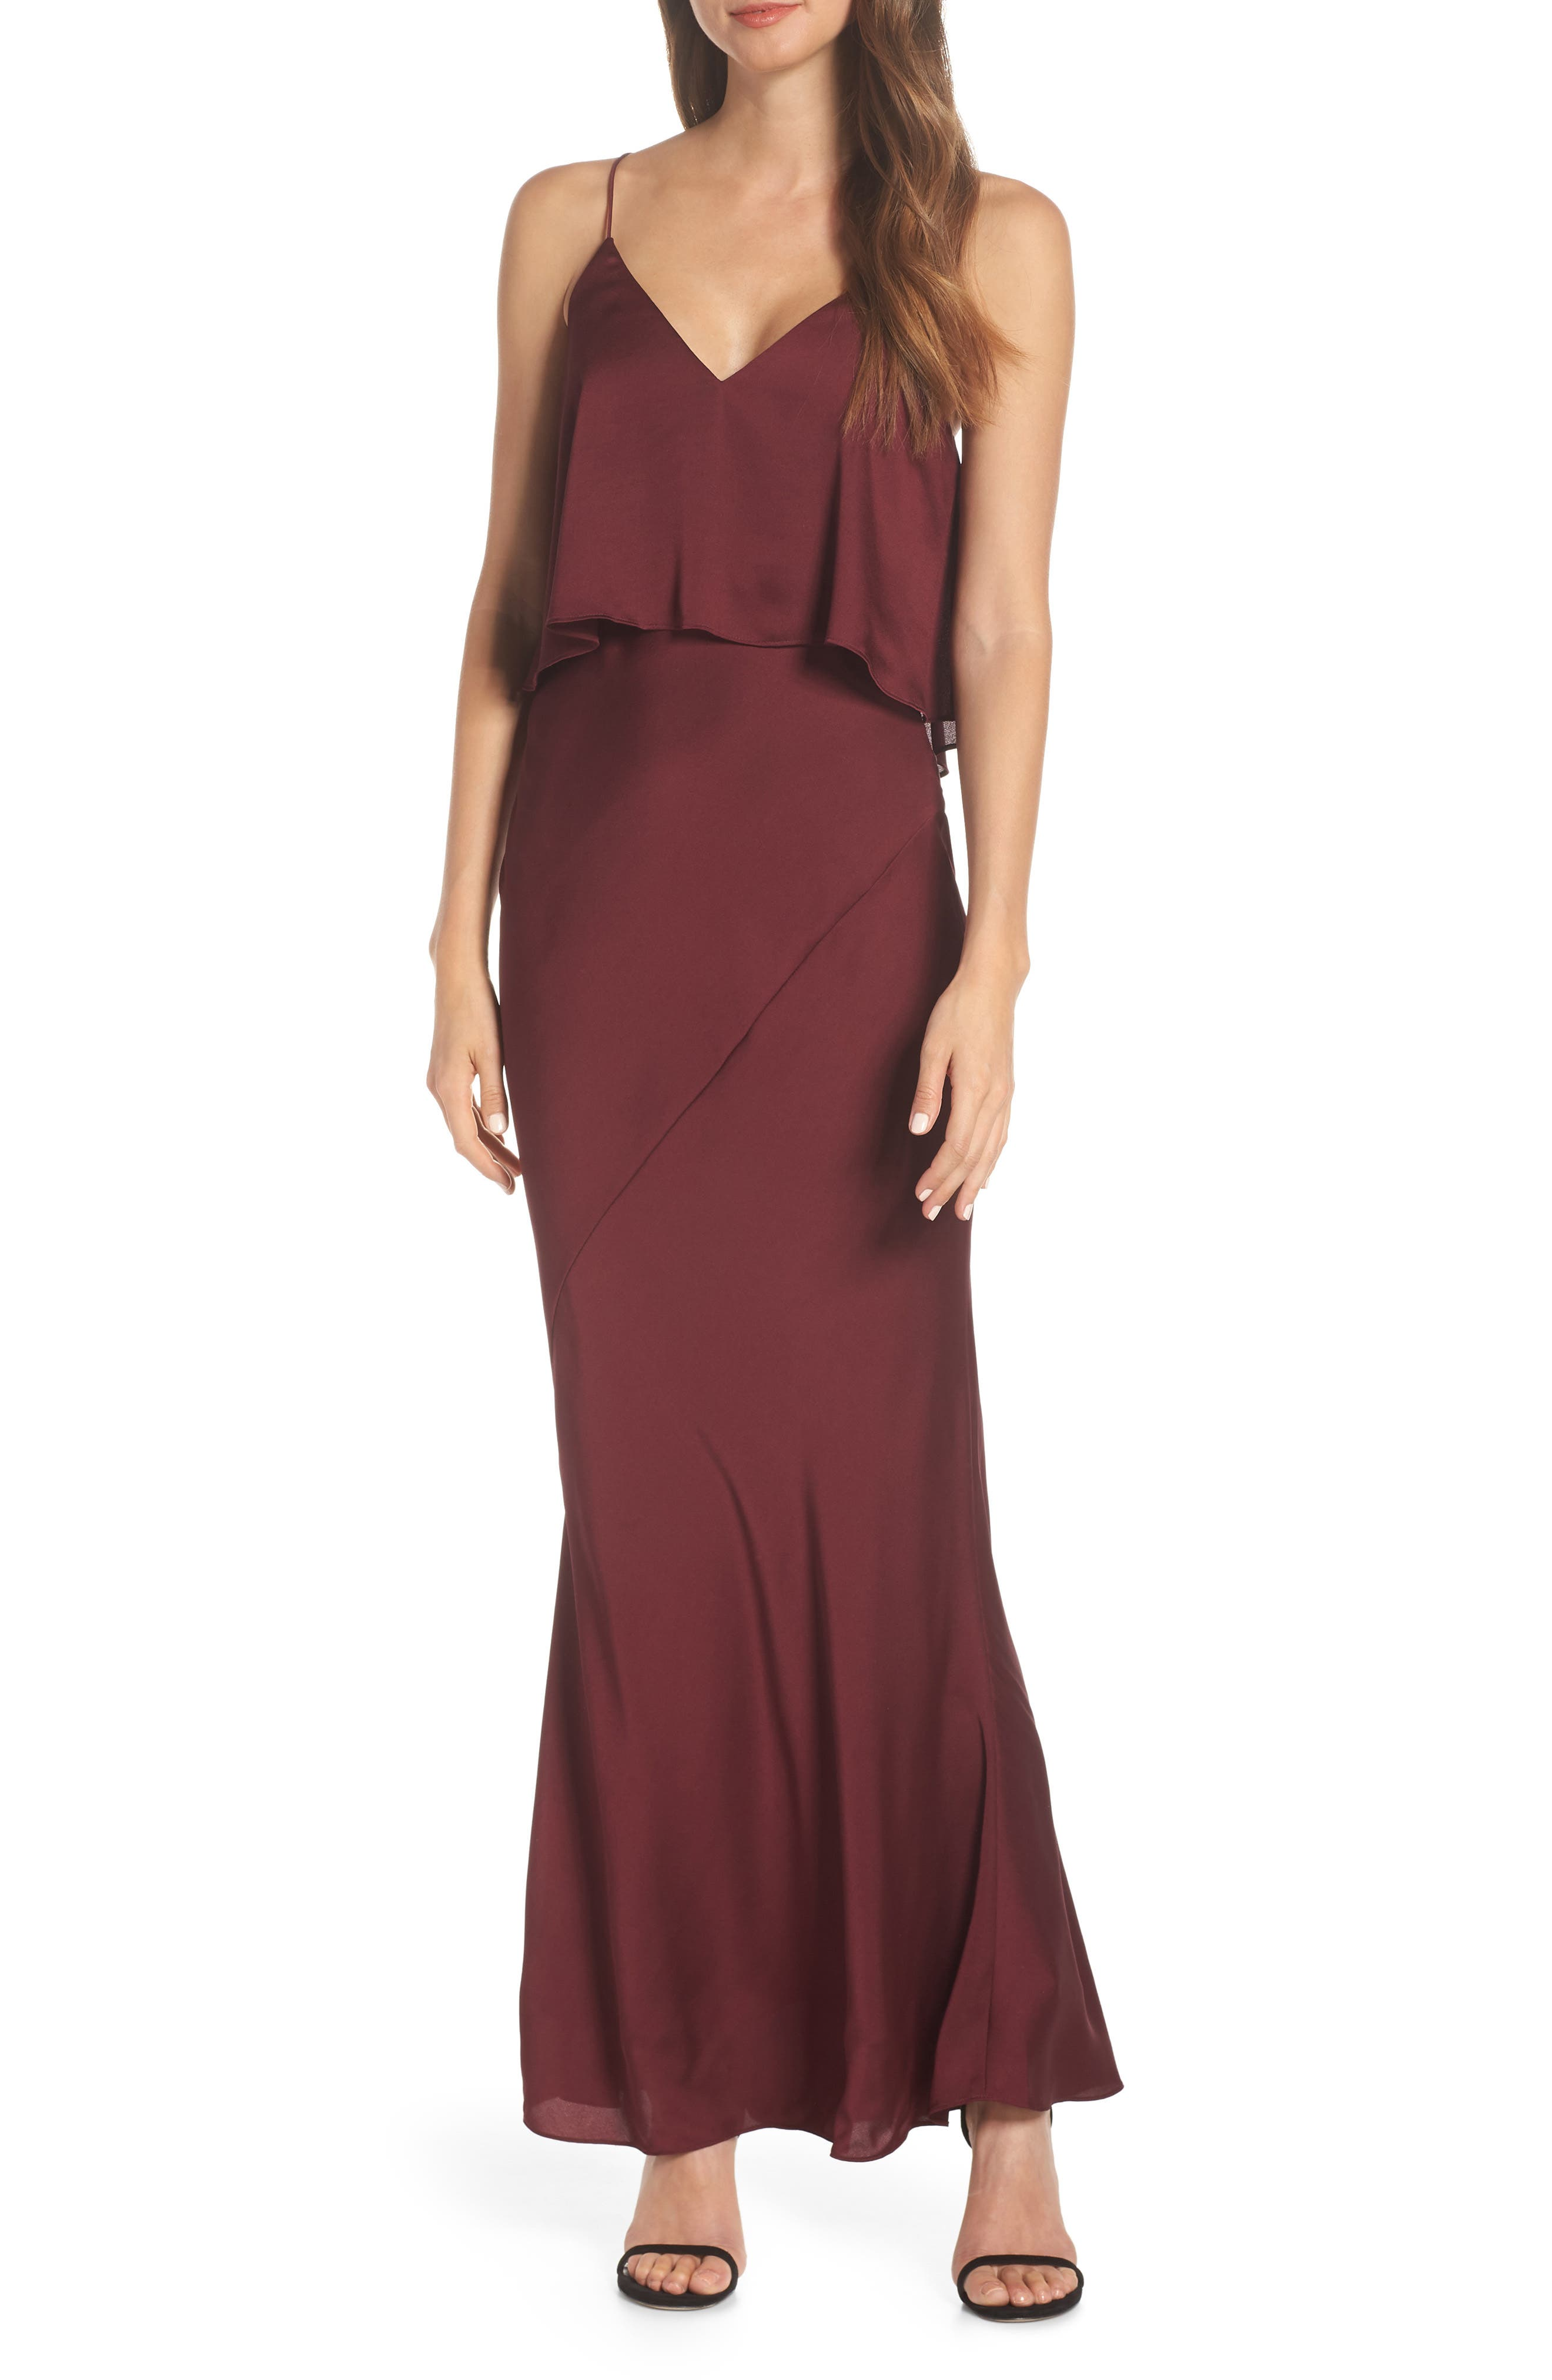 Shona Joy Luxe Frilled Bodice Bias Cut Gown, Red